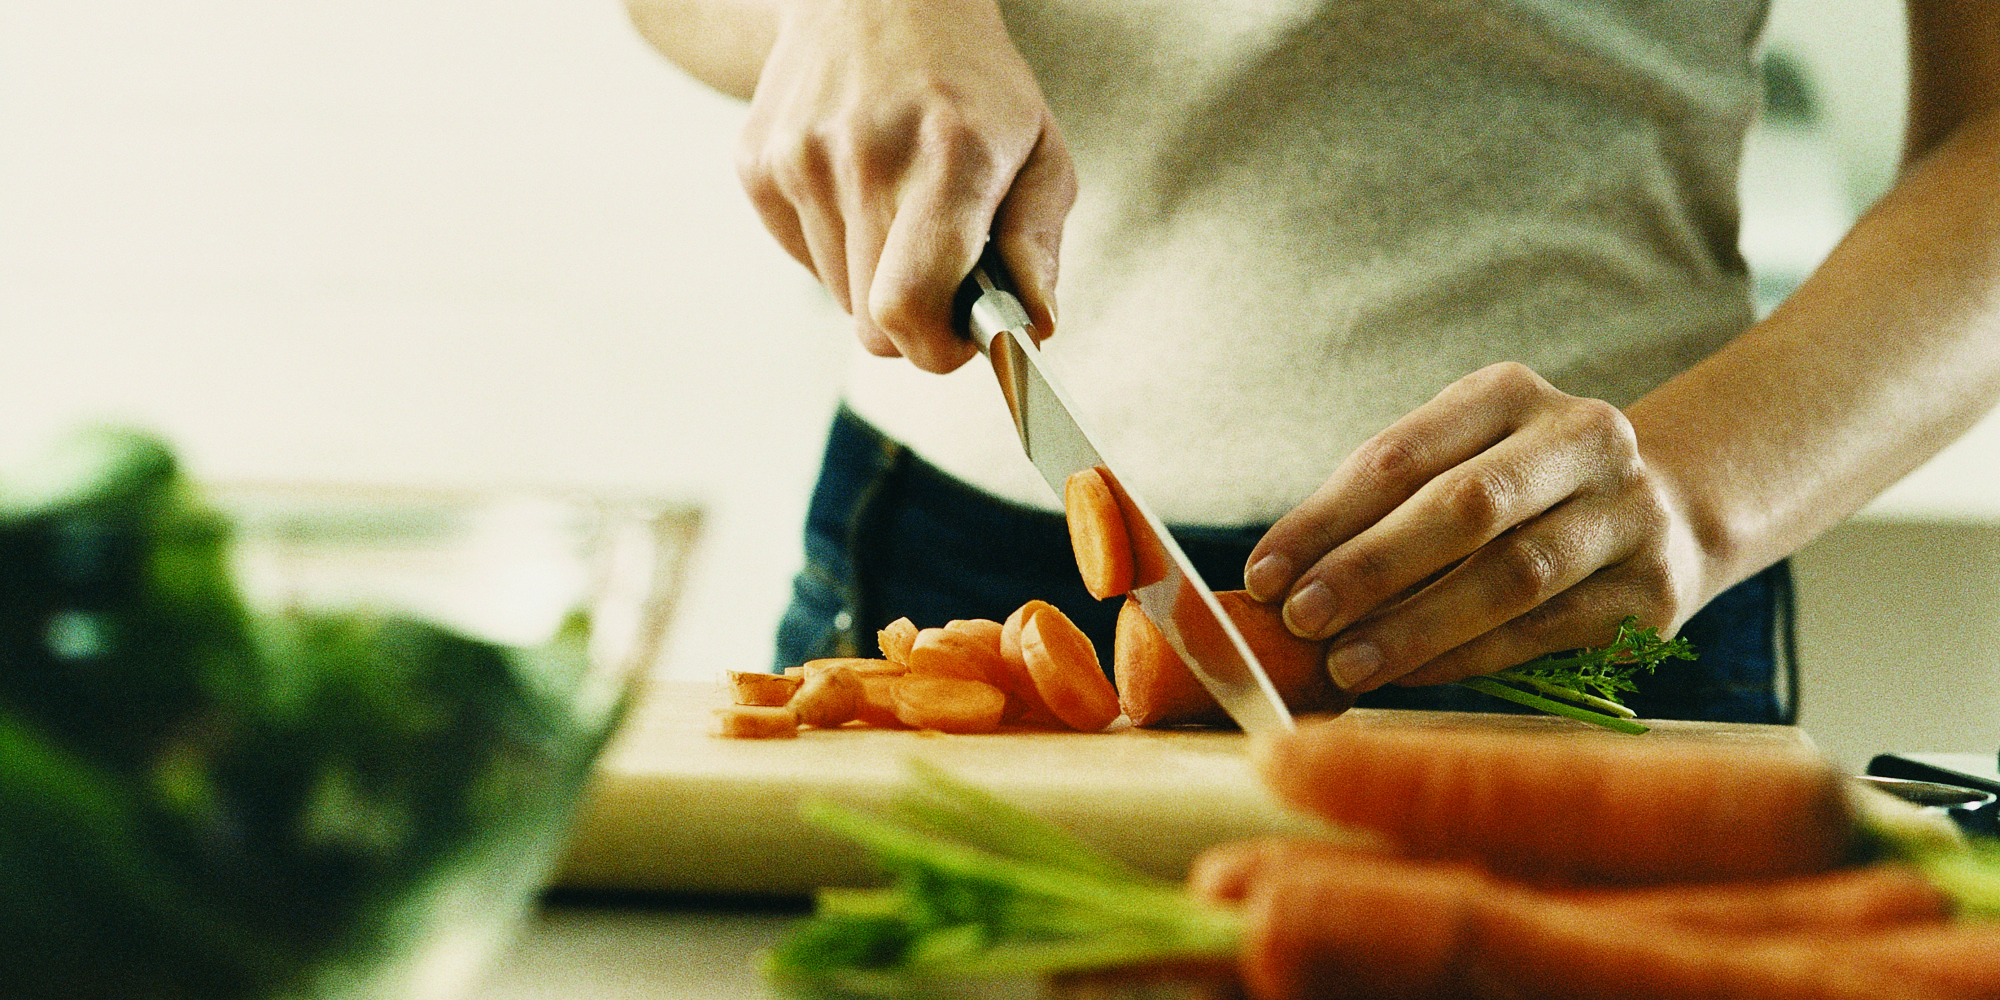 women cutting carrots